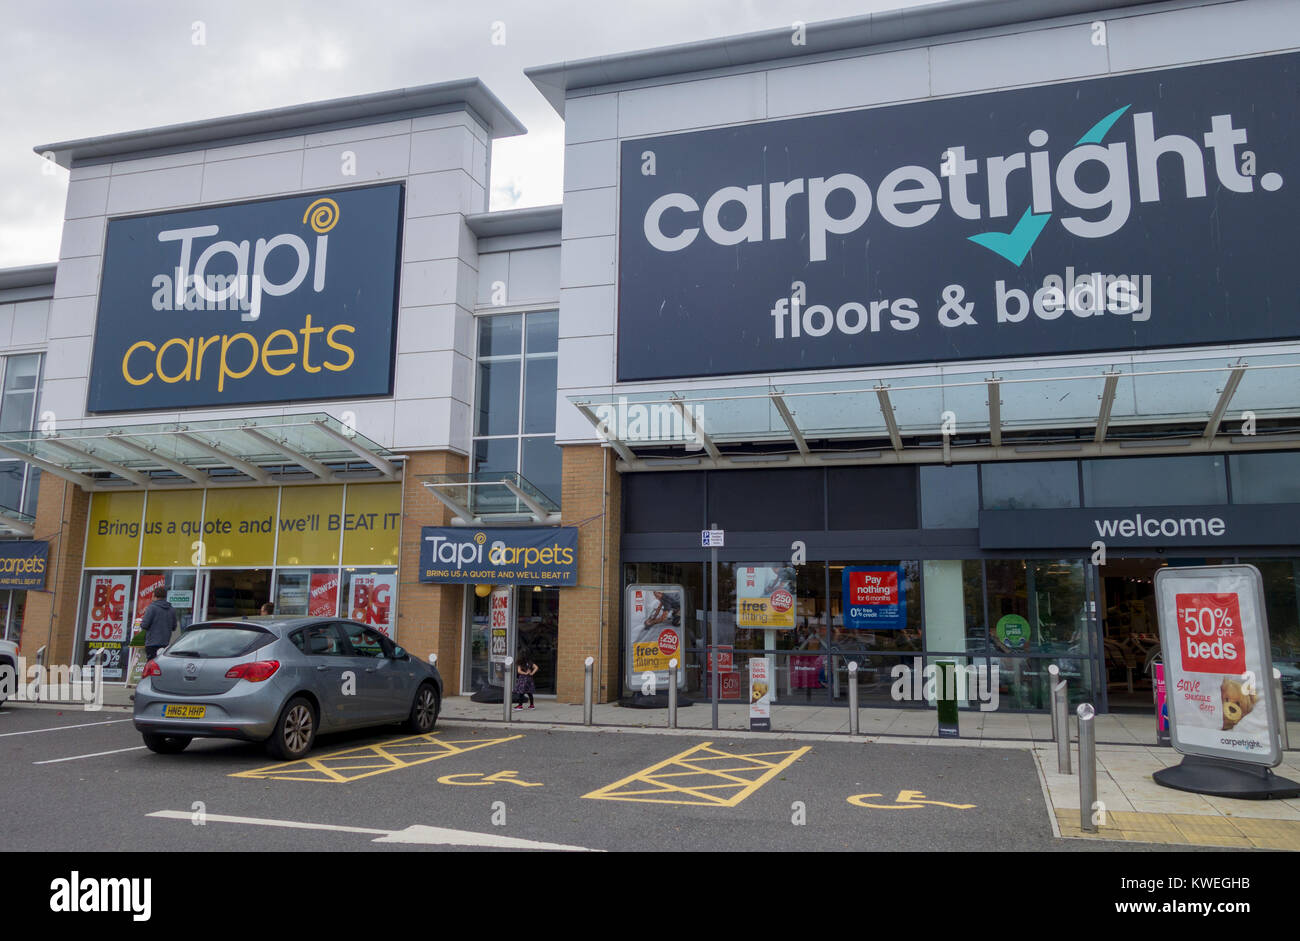 Tapi Carpets and Carpetright Stores next to each other, Ocean Retail Park, Portsmouth, UK - Stock Image